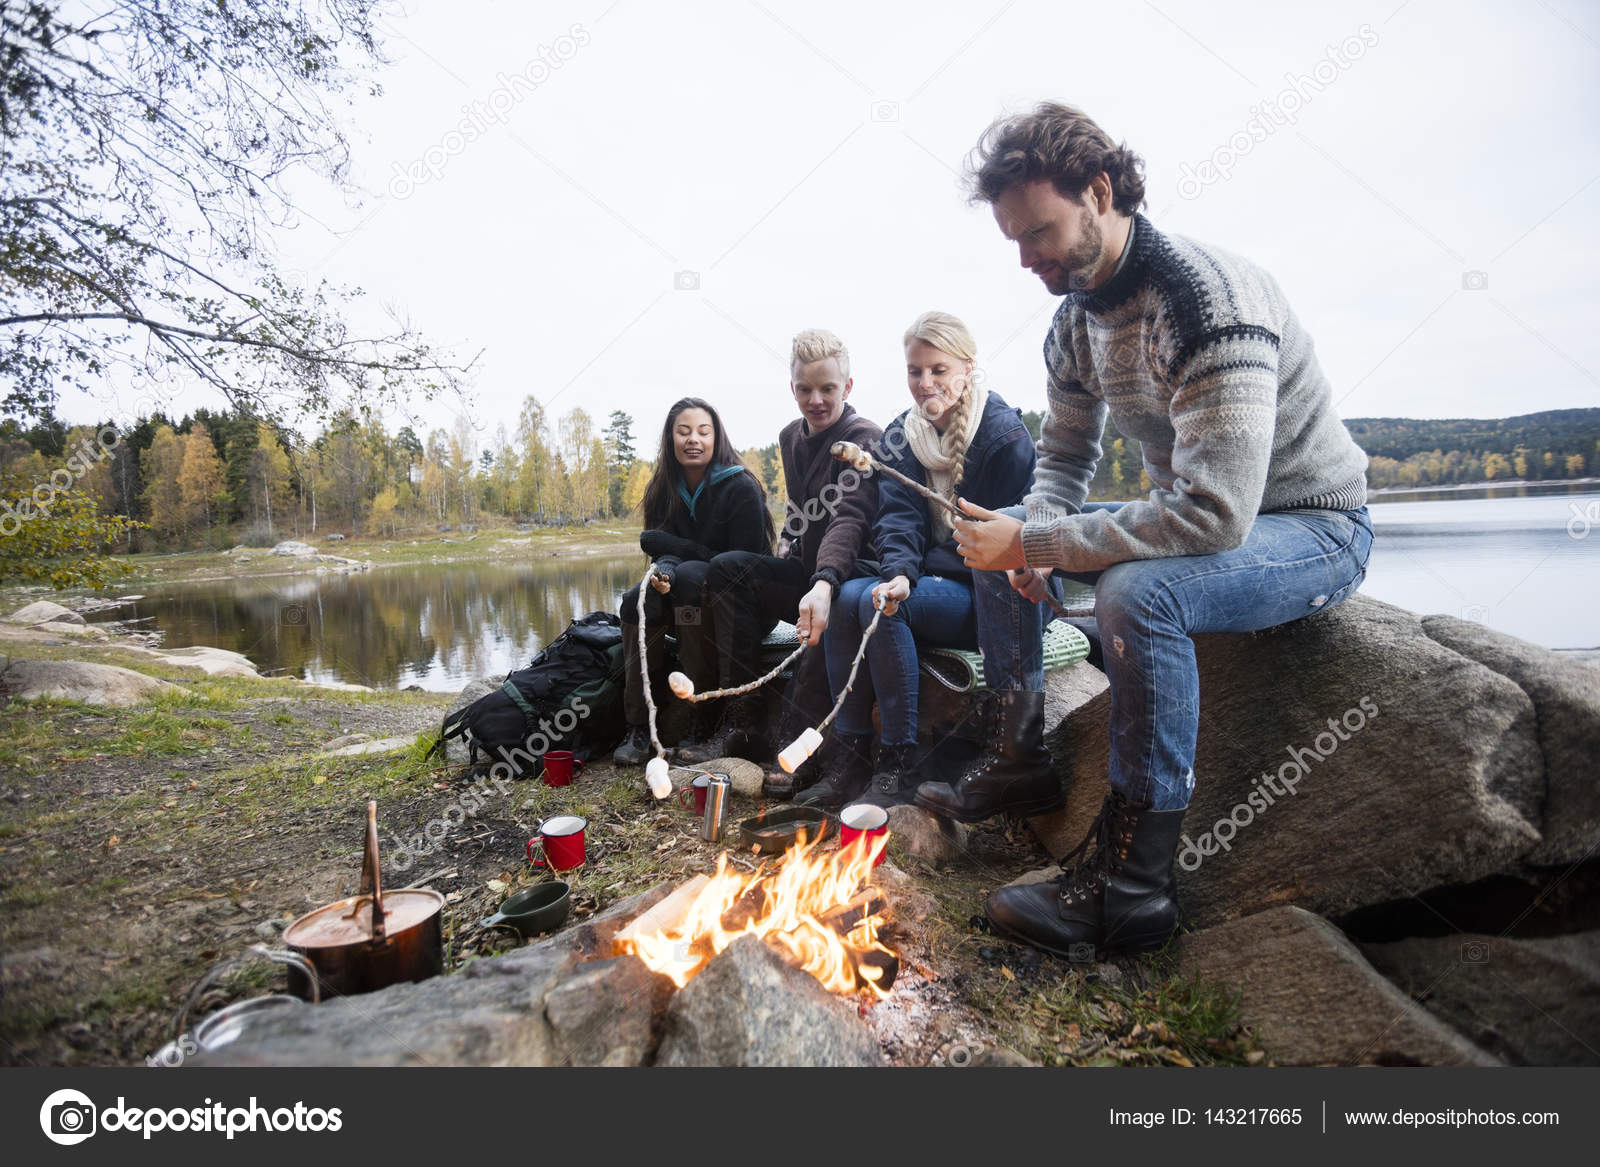 Friends Roasting Marshmallows Over Campfire At Lakeshore Stock Photo